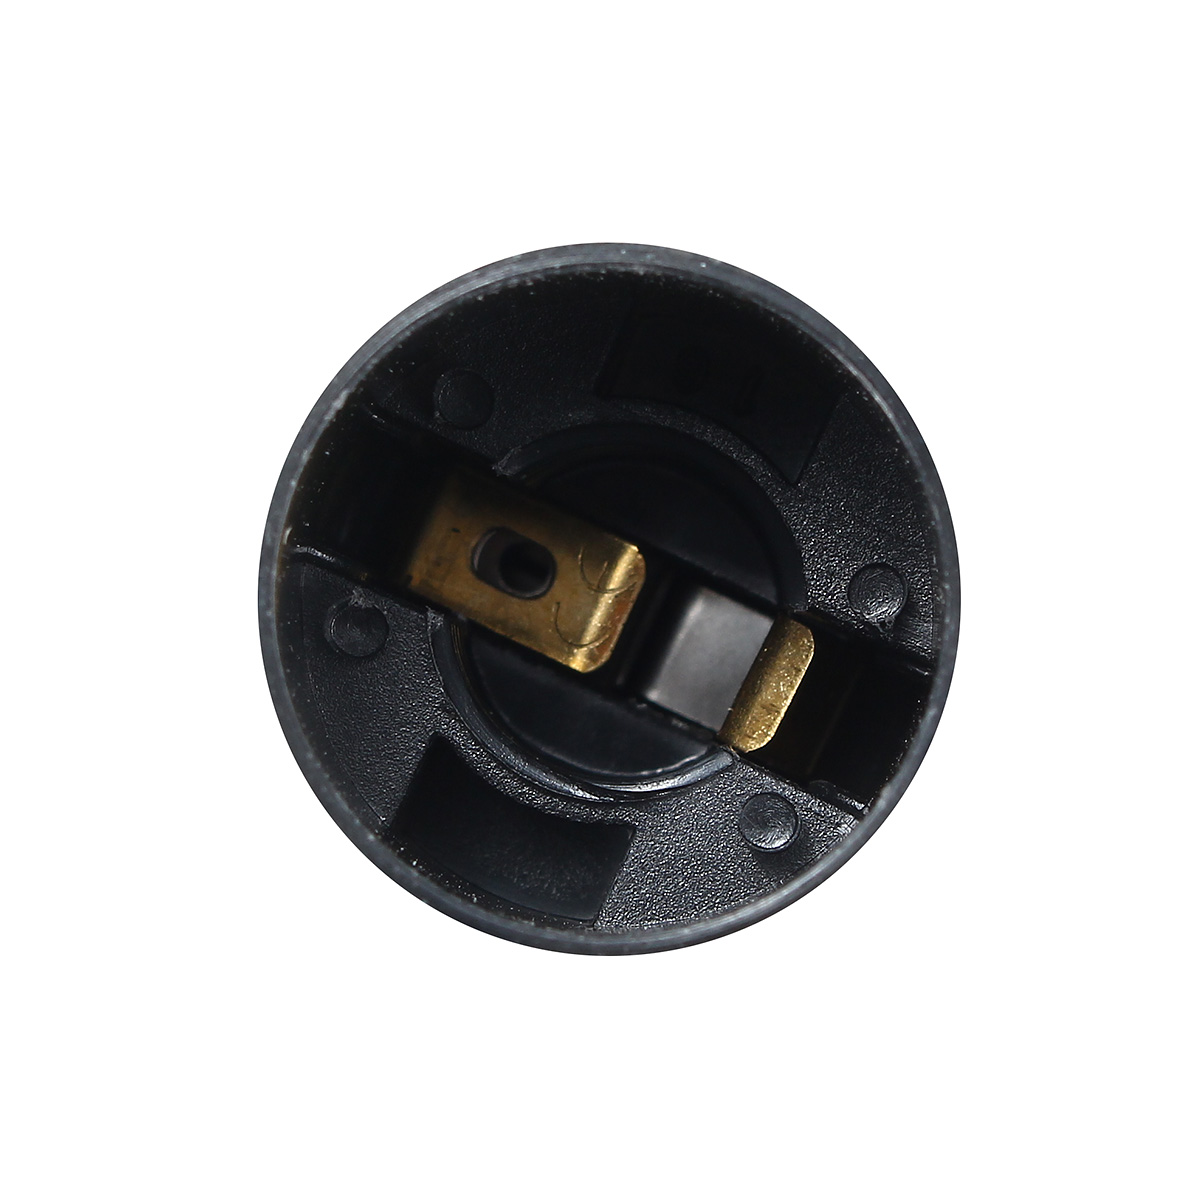 2M E14 Black Light Bulb Electric Power Cord Holder Adapter Socket for Himalayan Salt Lamp